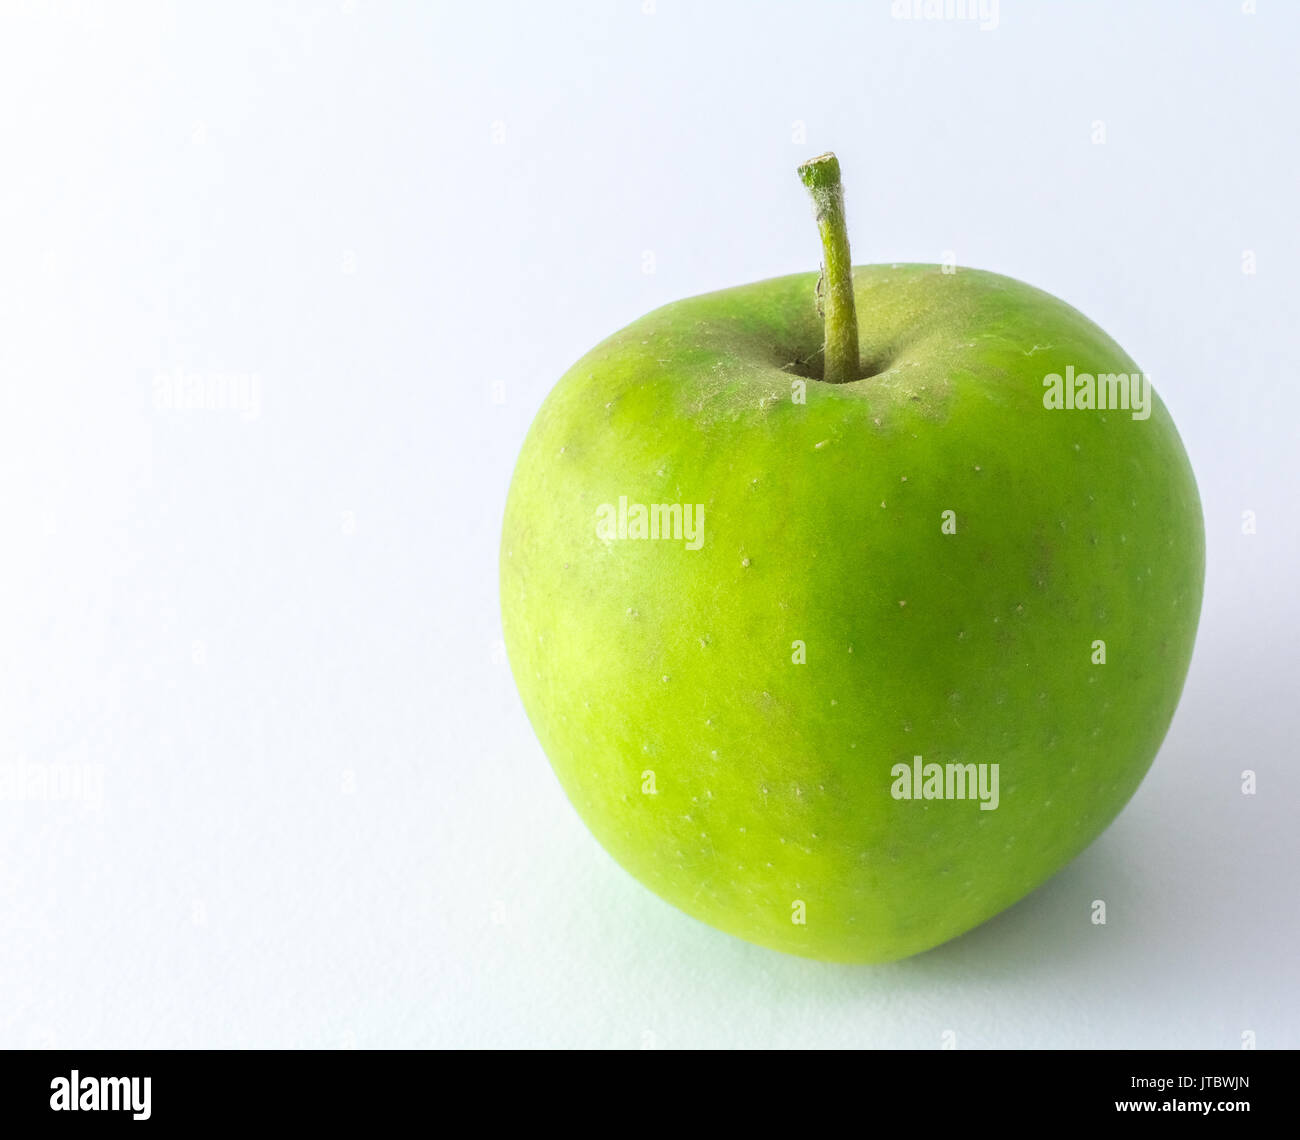 Apple Green Apple isolated on White Background Stock Photo